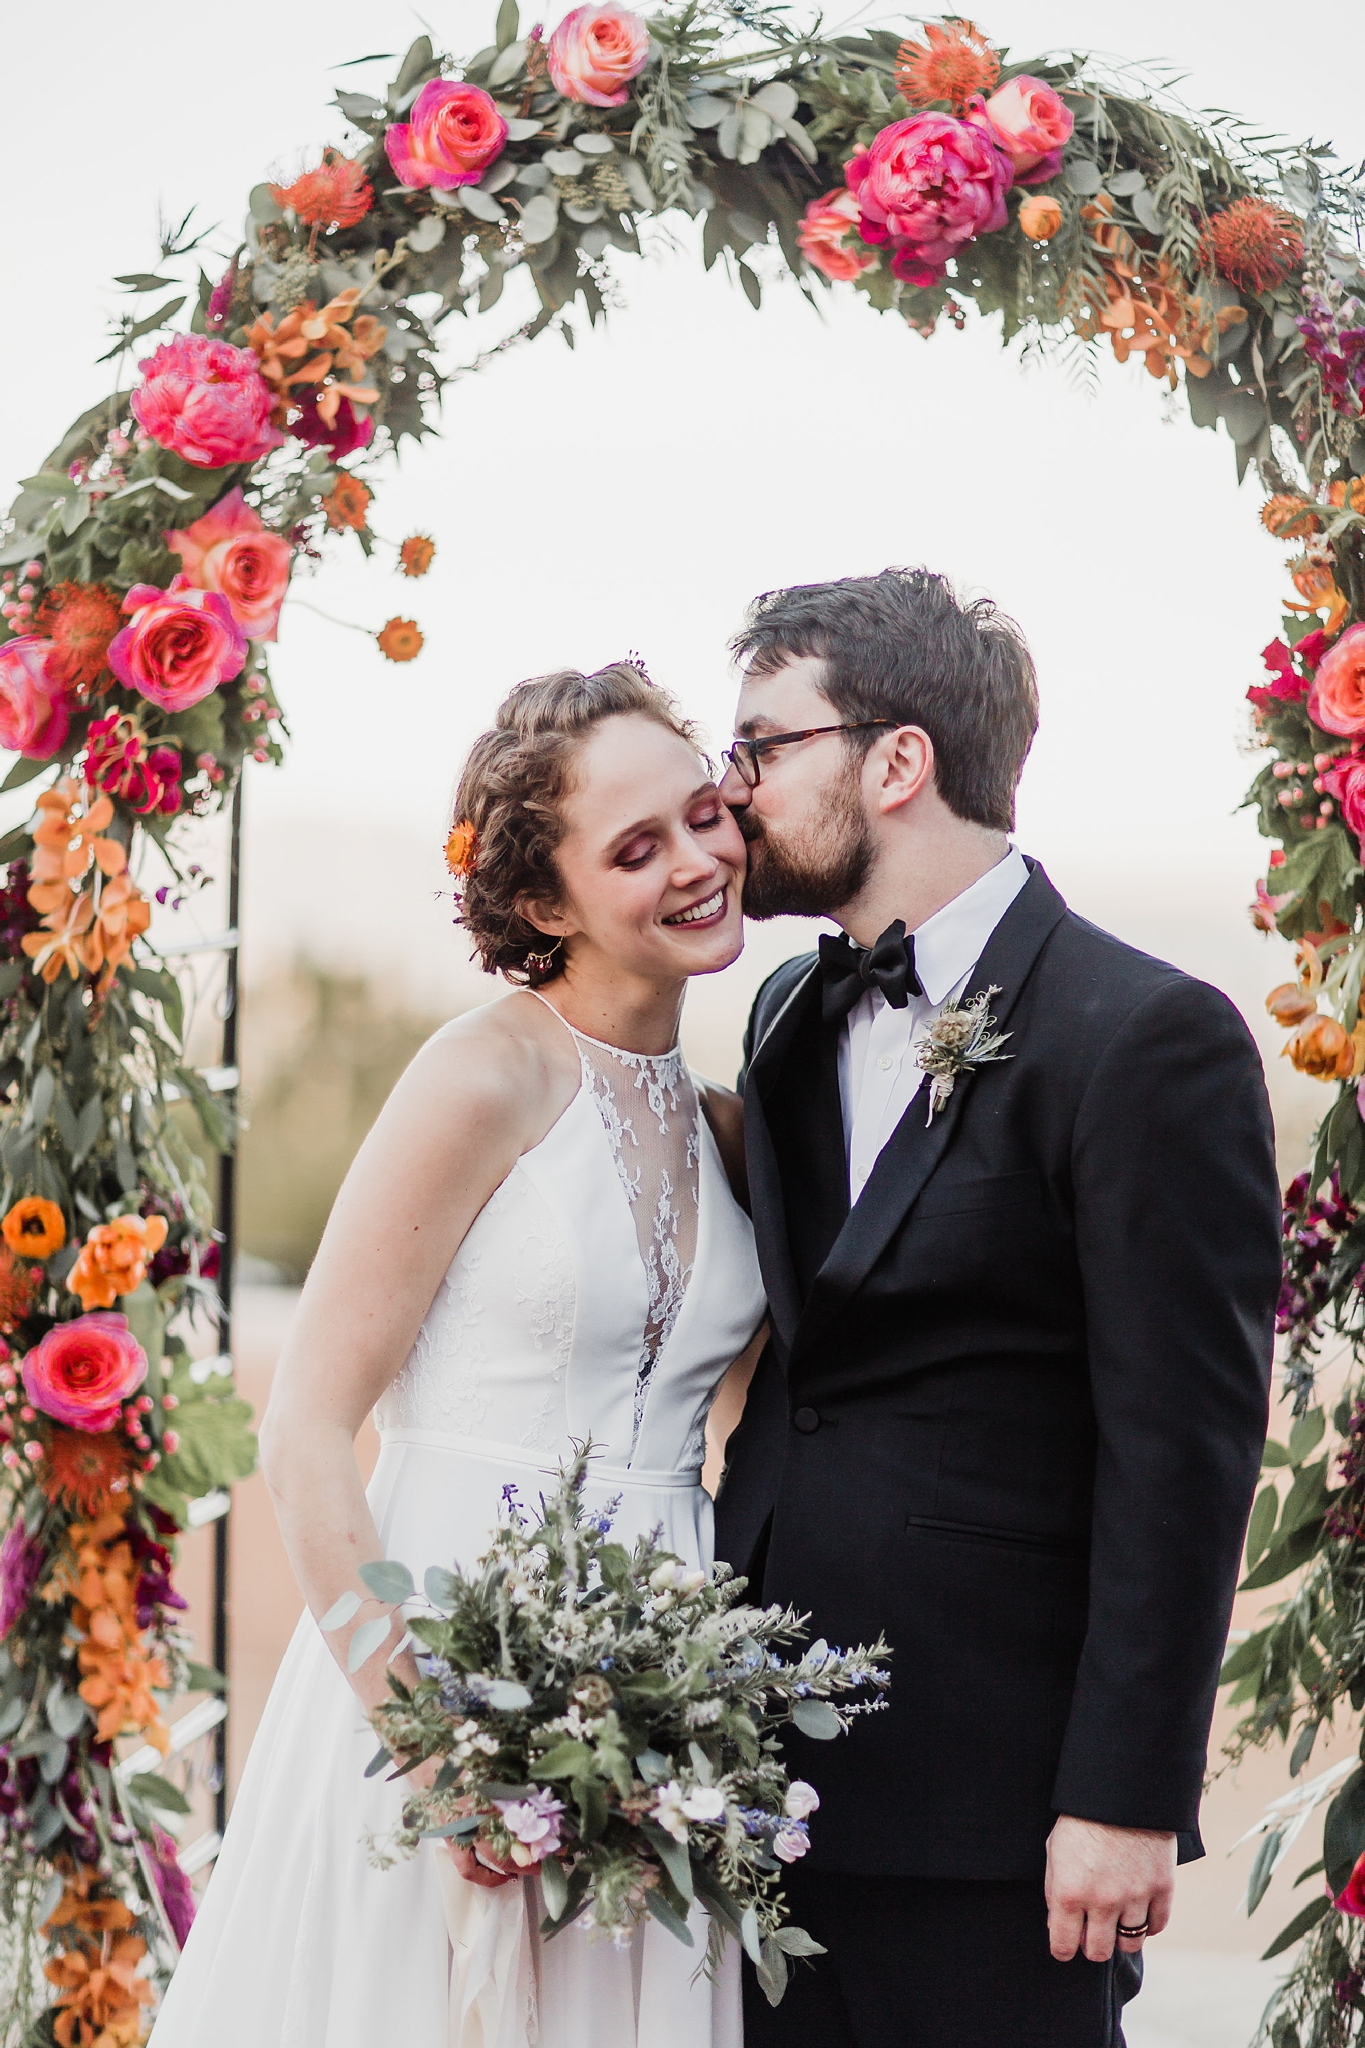 Alicia+lucia+photography+-+albuquerque+wedding+photographer+-+santa+fe+wedding+photography+-+new+mexico+wedding+photographer+-+new+mexico+wedding+-+wedding+vows+-+writing+your+own+vows+-+wedding+inspo_0027.jpg